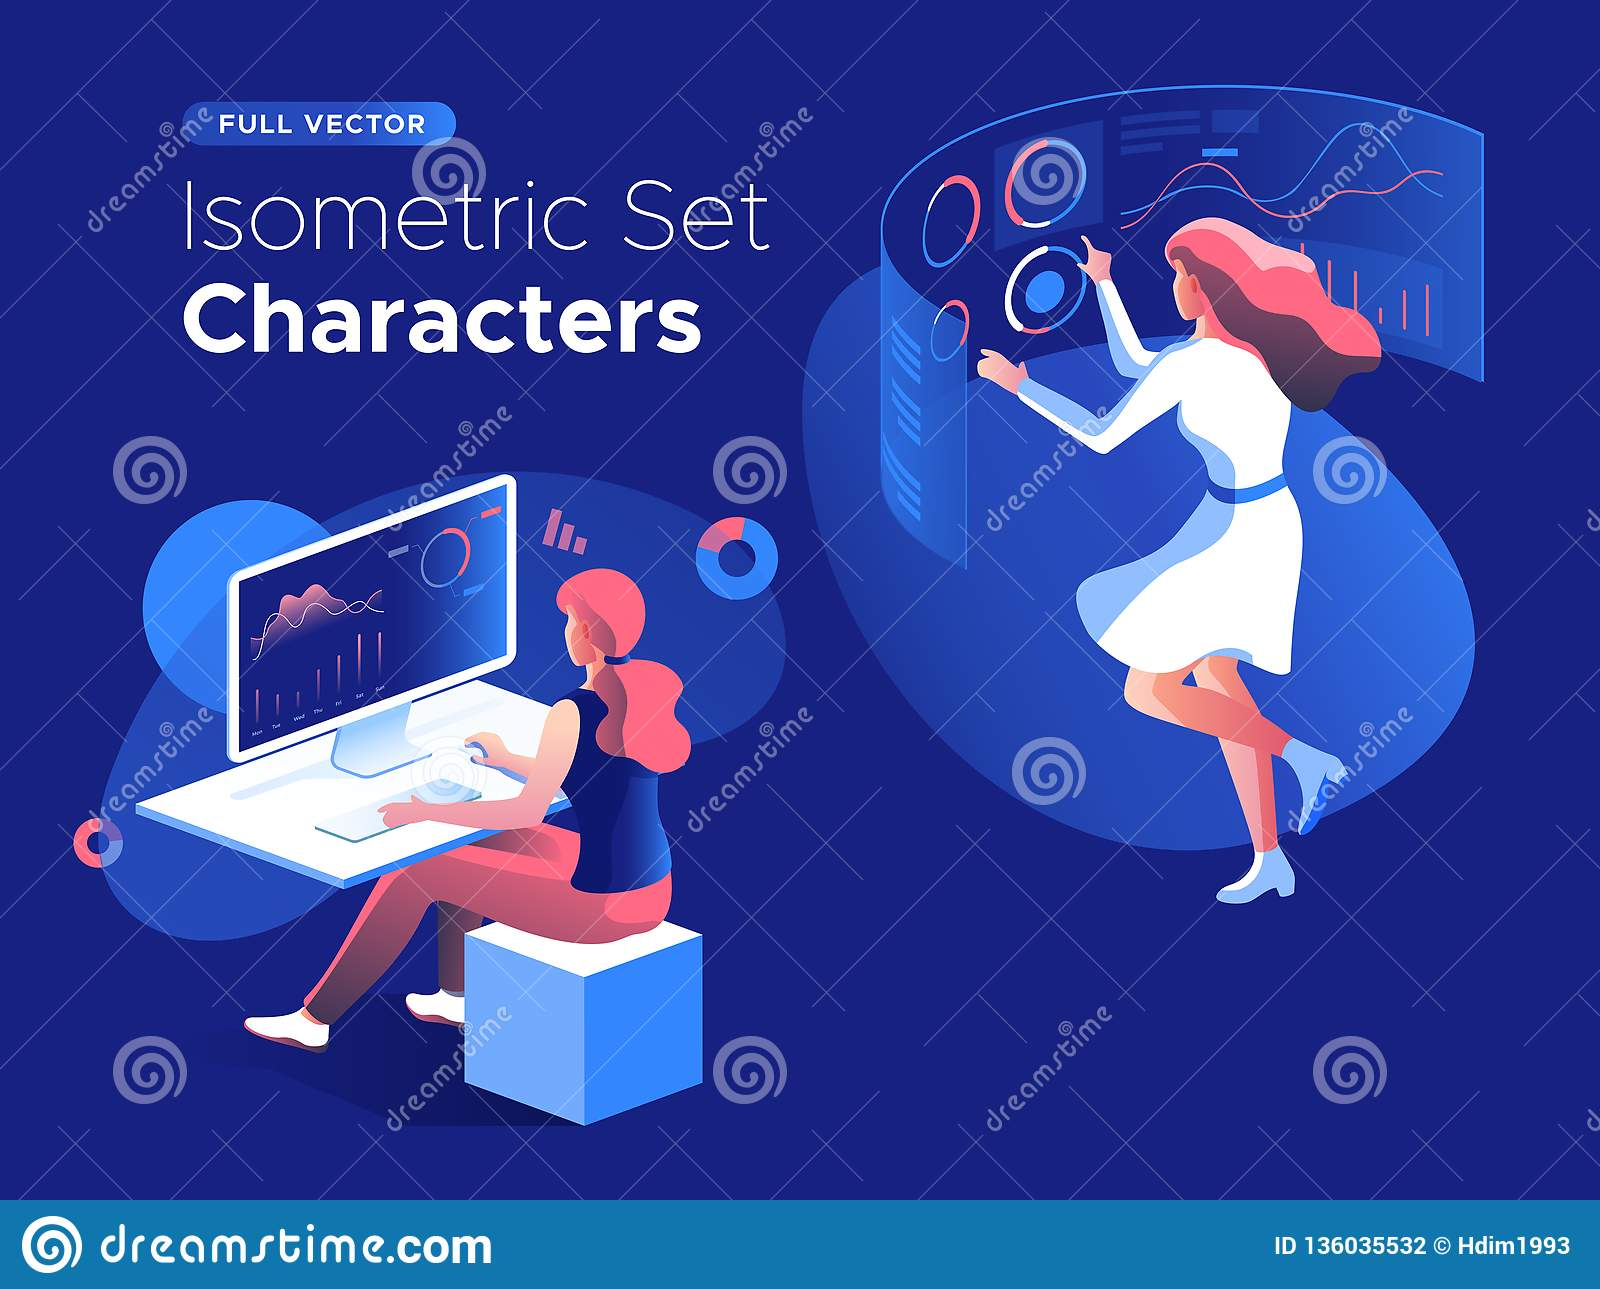 People work and interacting with graphs and devices. Data analysis and office situations. 3D Isometric vector illustration set.